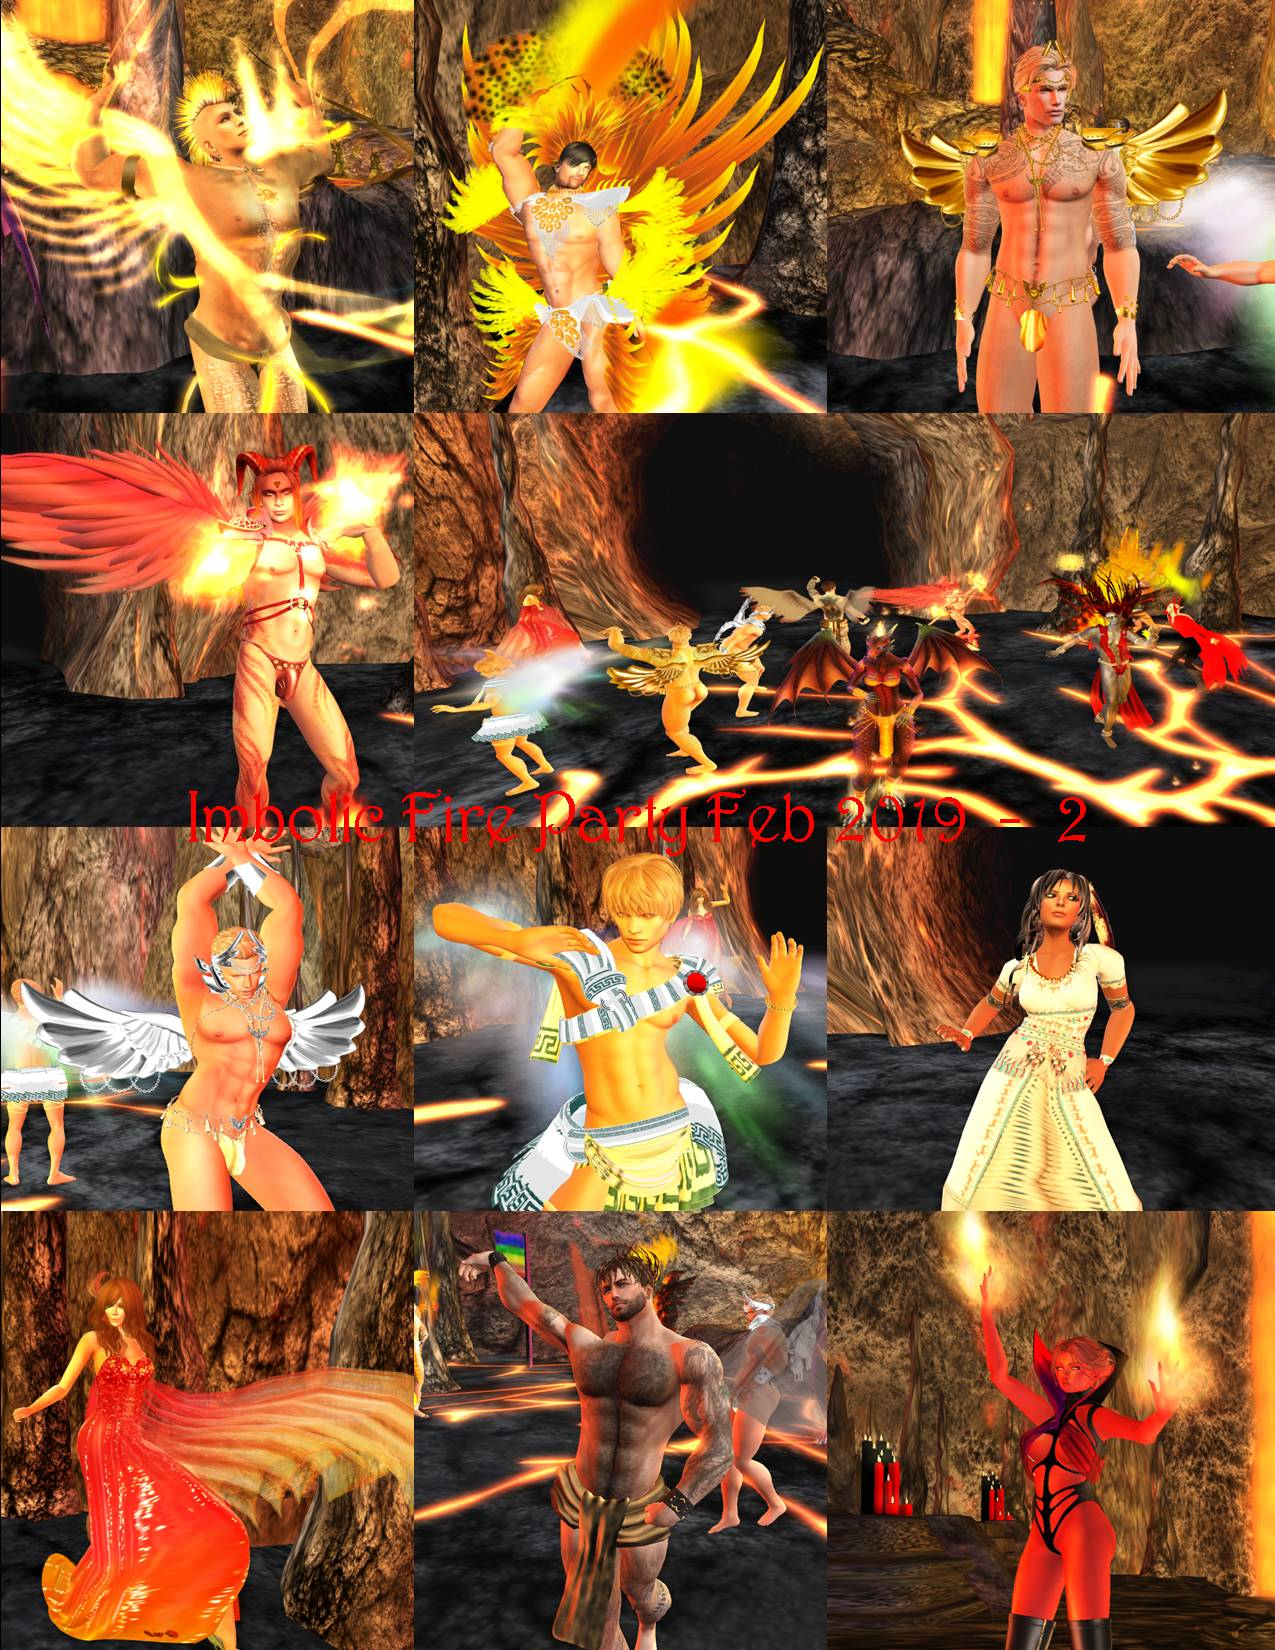 IMBOLIC FIRE PARTY COLLAGE FEB 2019 - 2